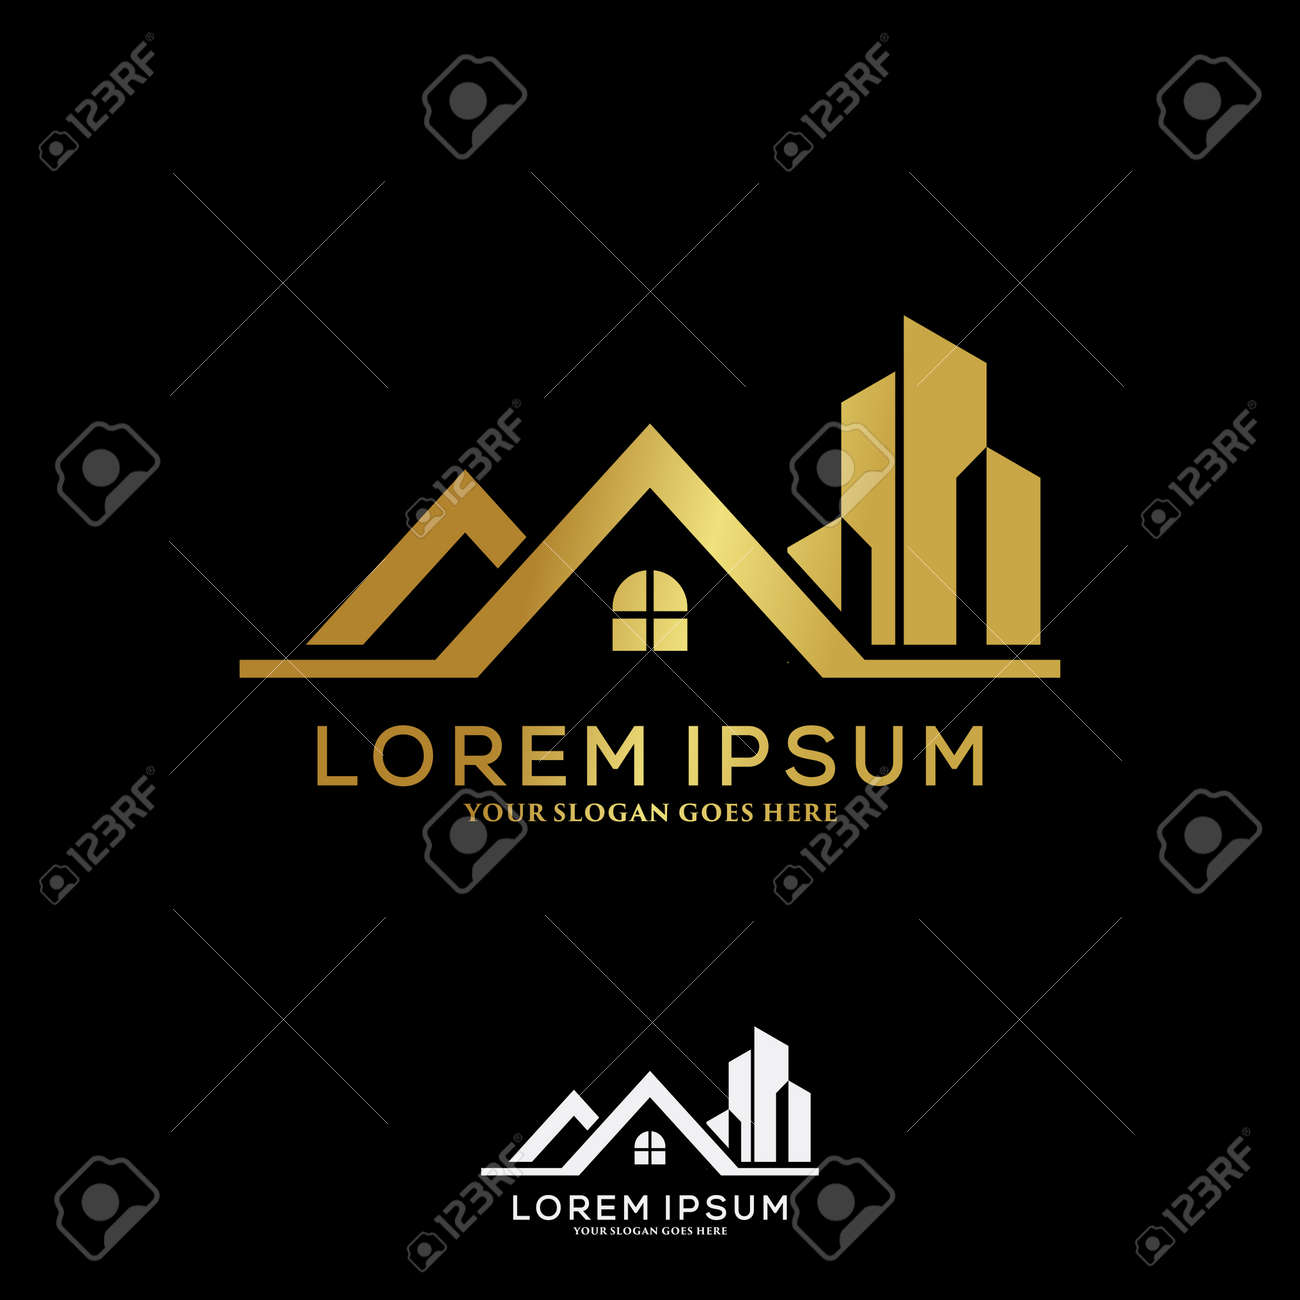 Luxury building construction logo template design concept. Real estate and architecture logo vector. - 169734745